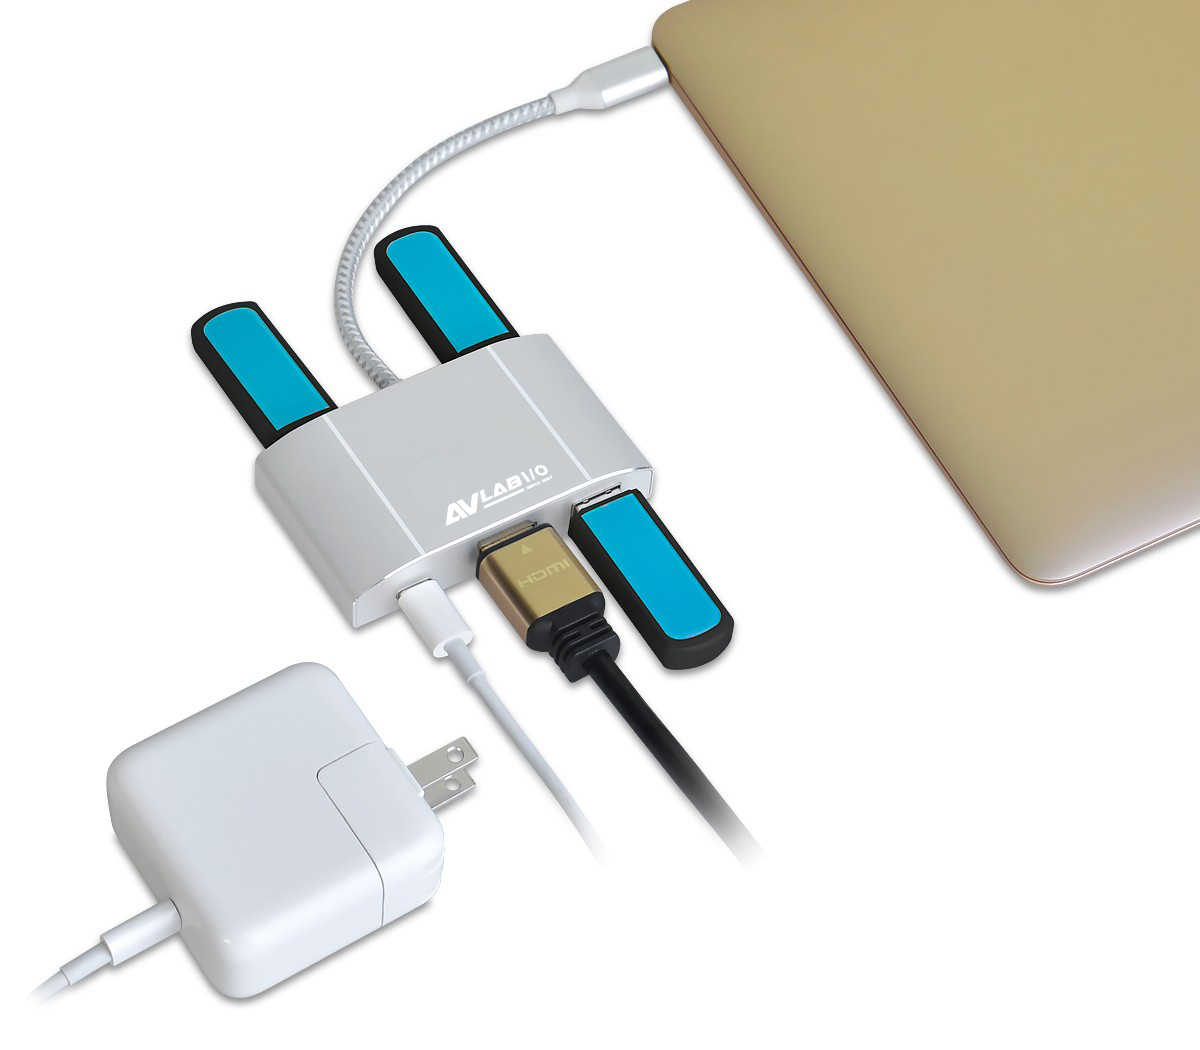 AVLAB USB 3 1 Type-C Hub with HDMI & PD Charging Adapter